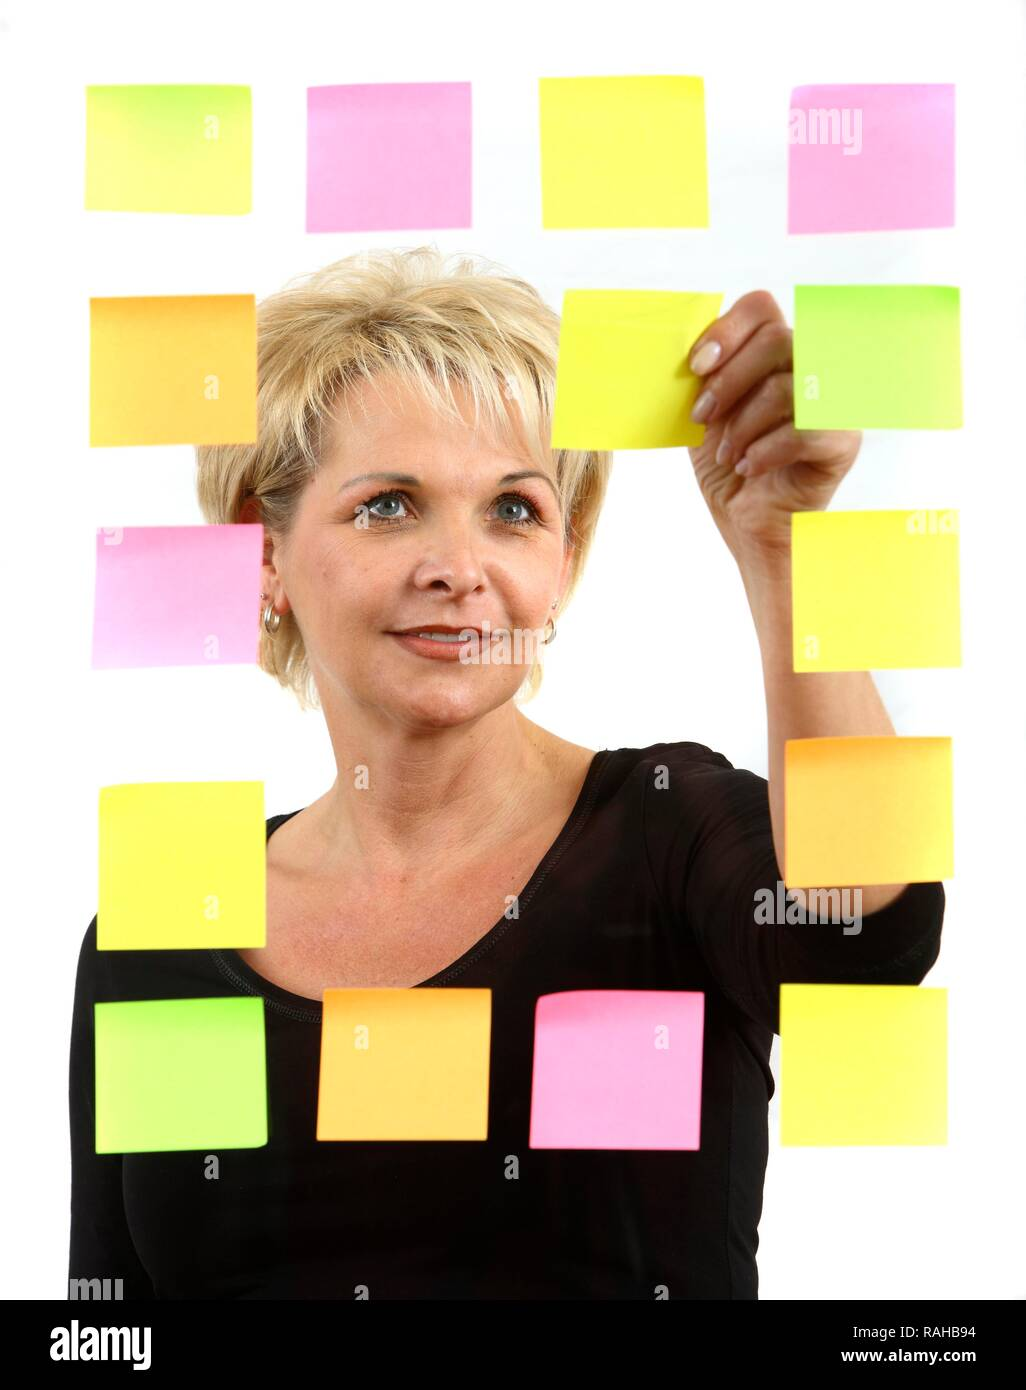 Woman sticking PostIt sticky notes to a sheet of glass - Stock Image